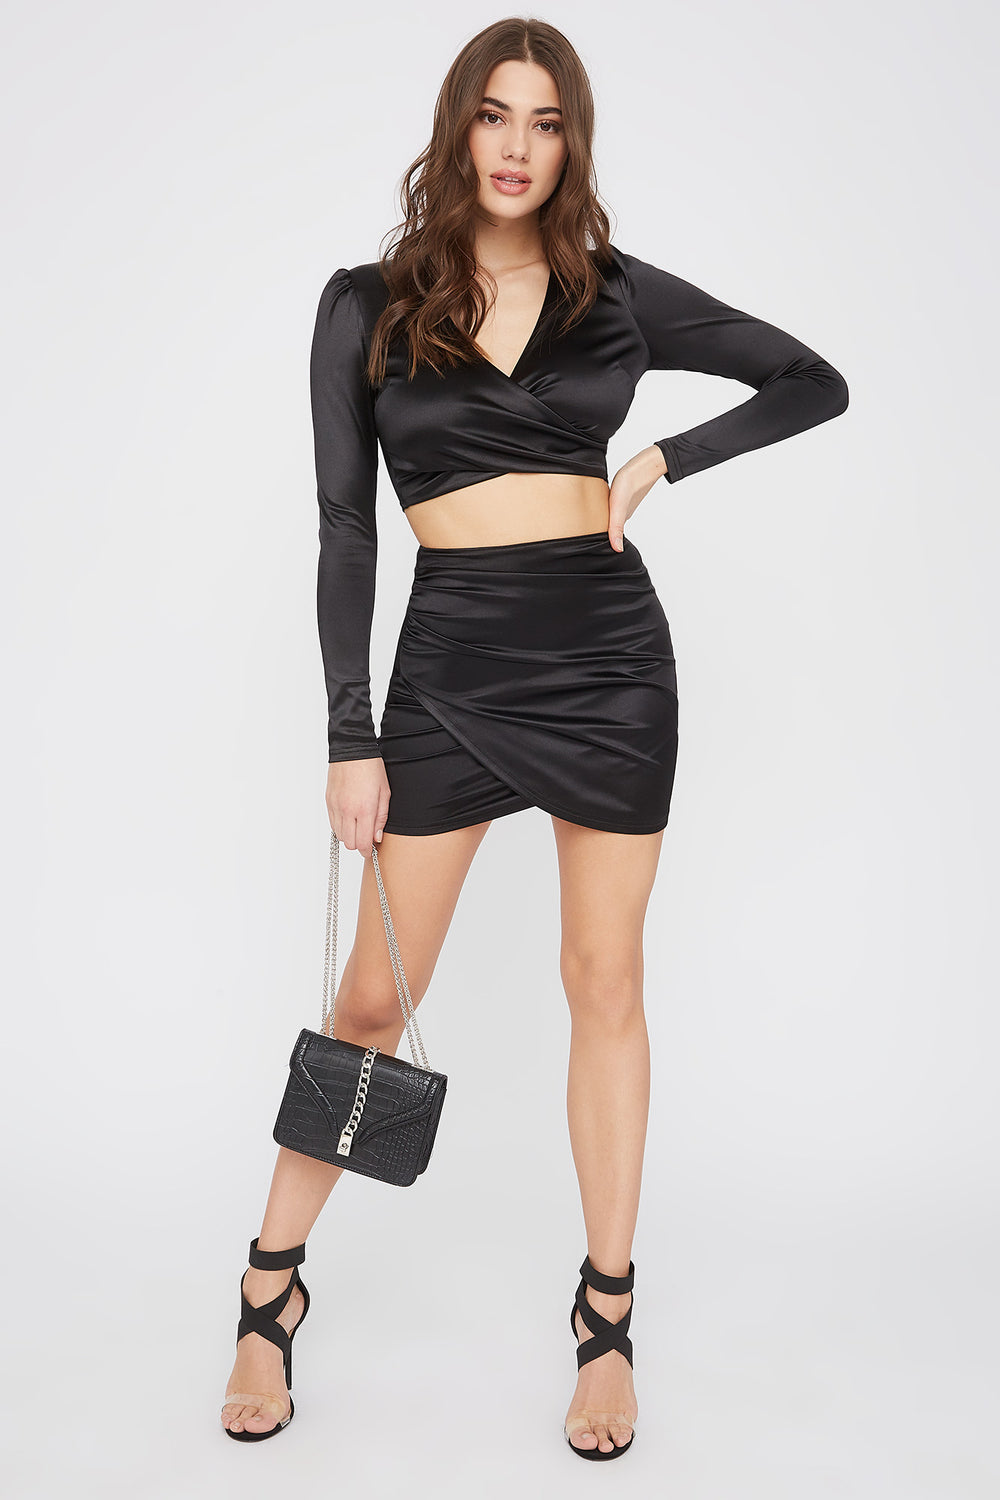 Satin Solid Tulip Mini Skirt Black